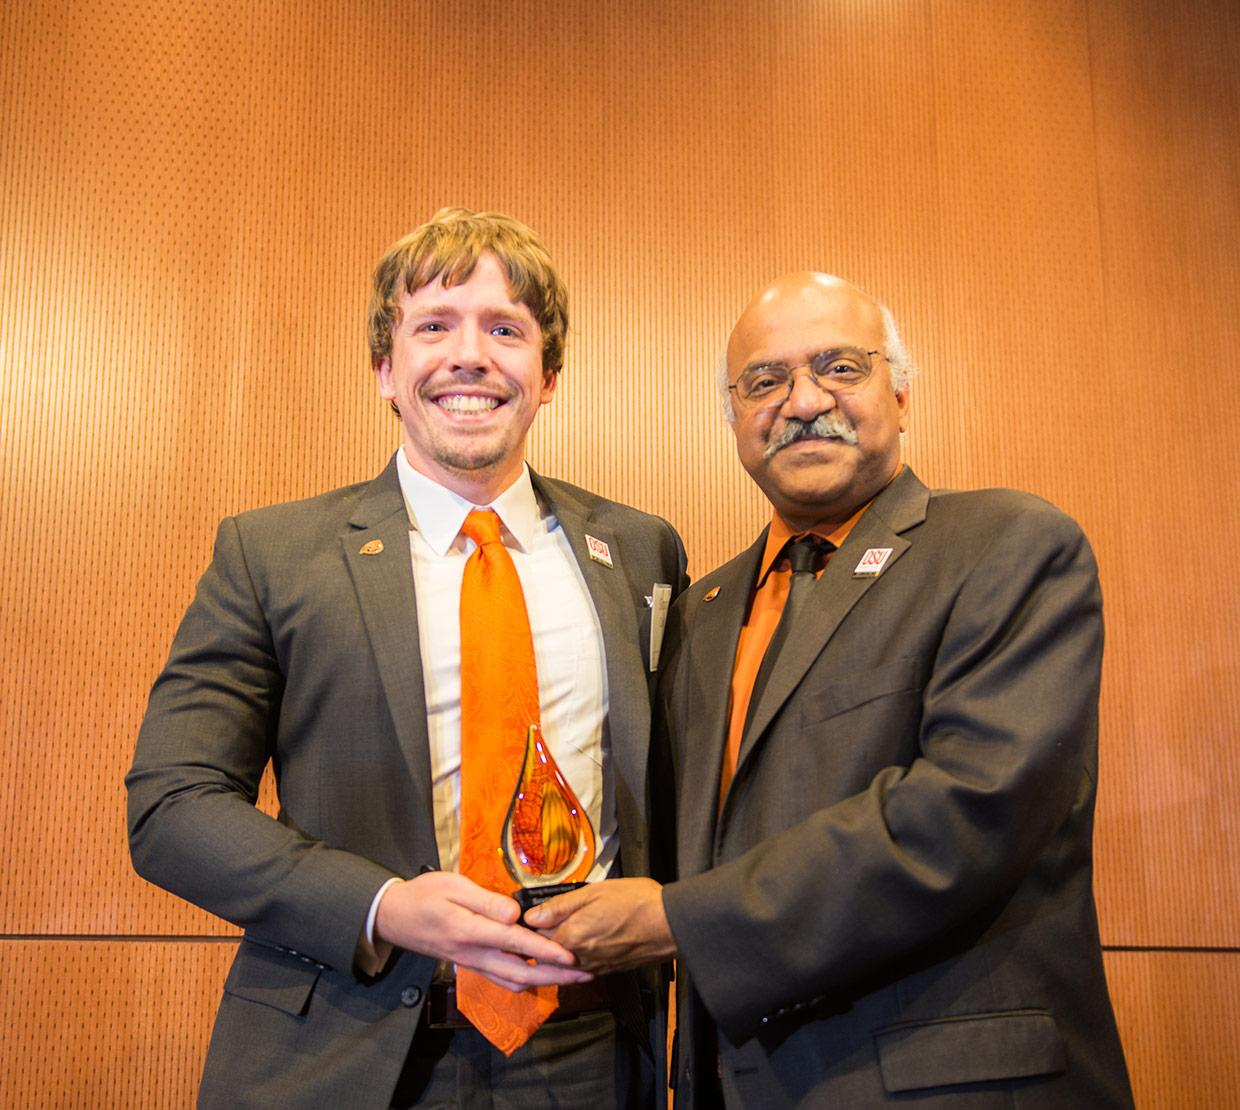 Sastry Pantula giving Scott Clark his alumni award